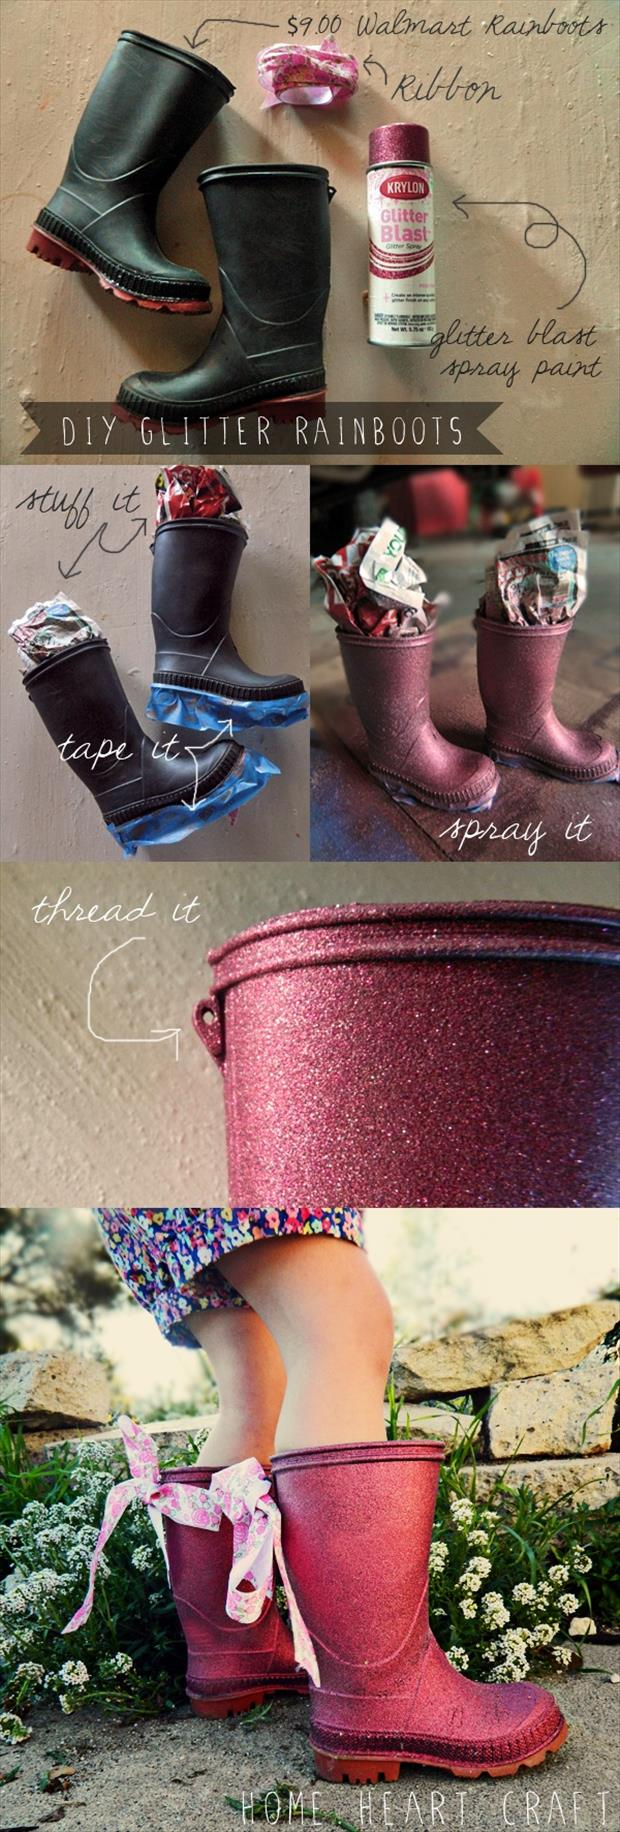 painted boots fun craft ideas